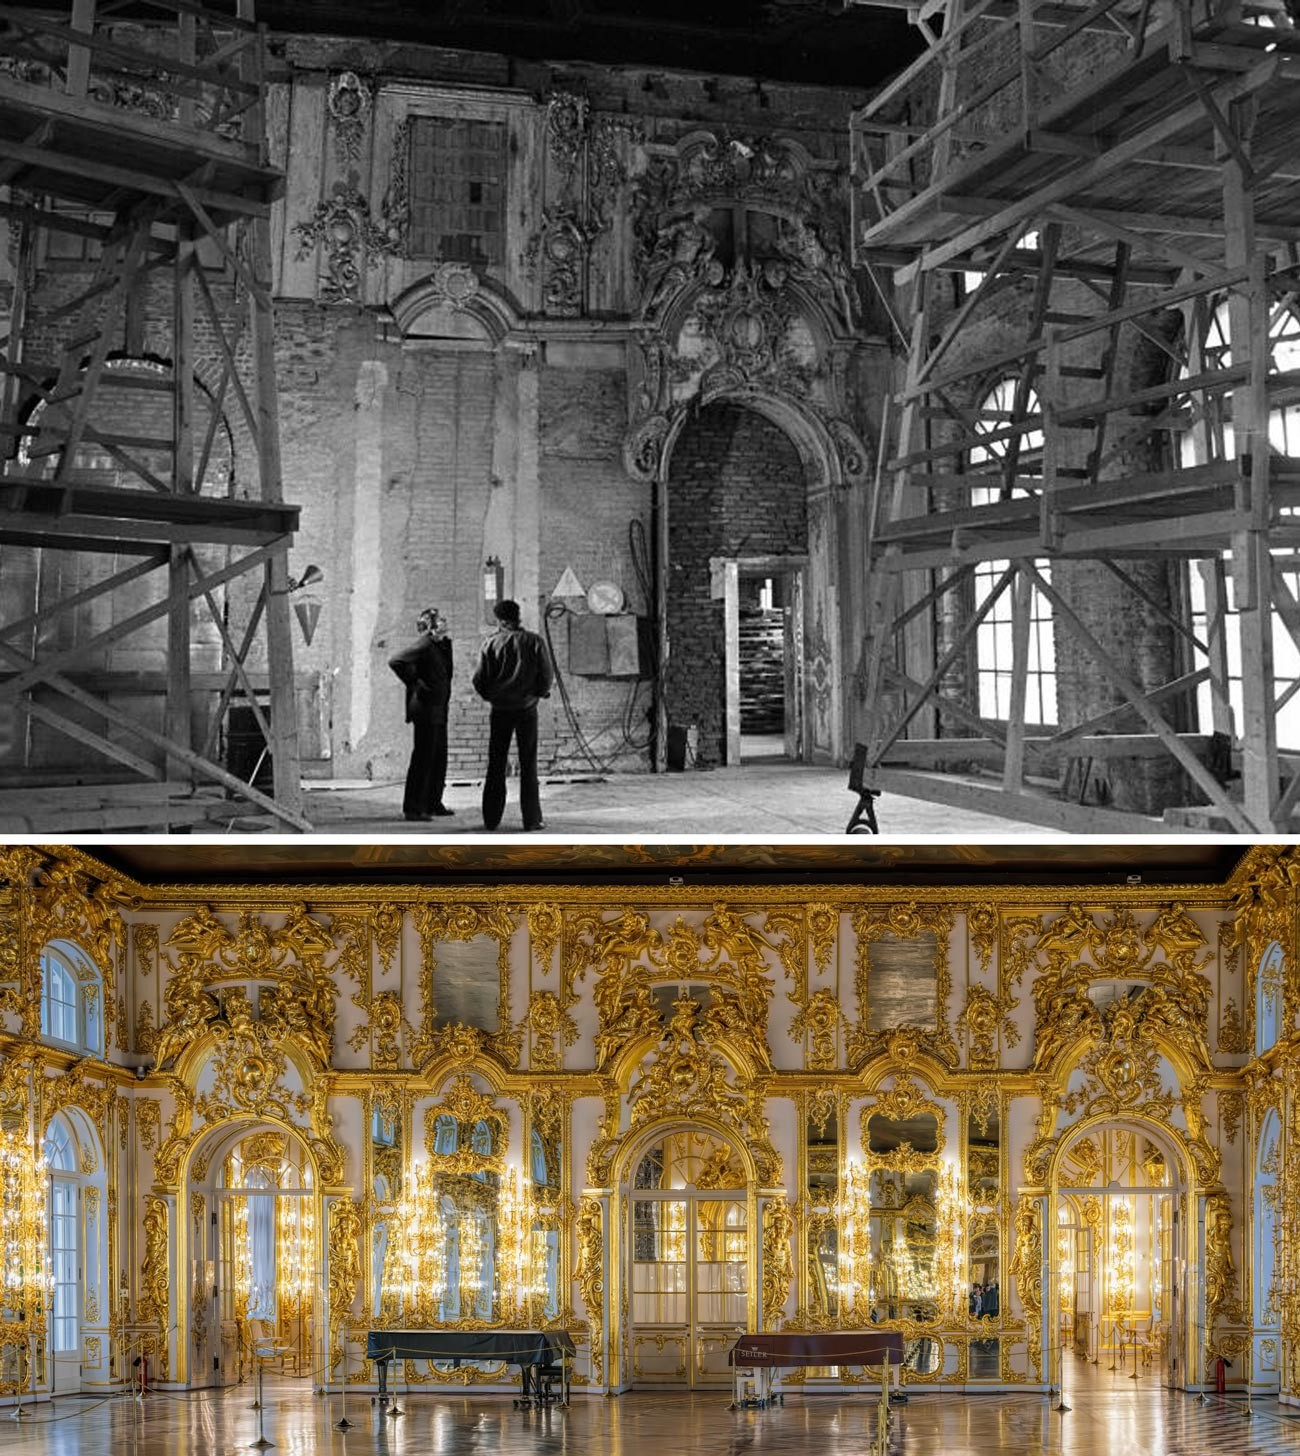 The Great Hall of the Catherine Palace